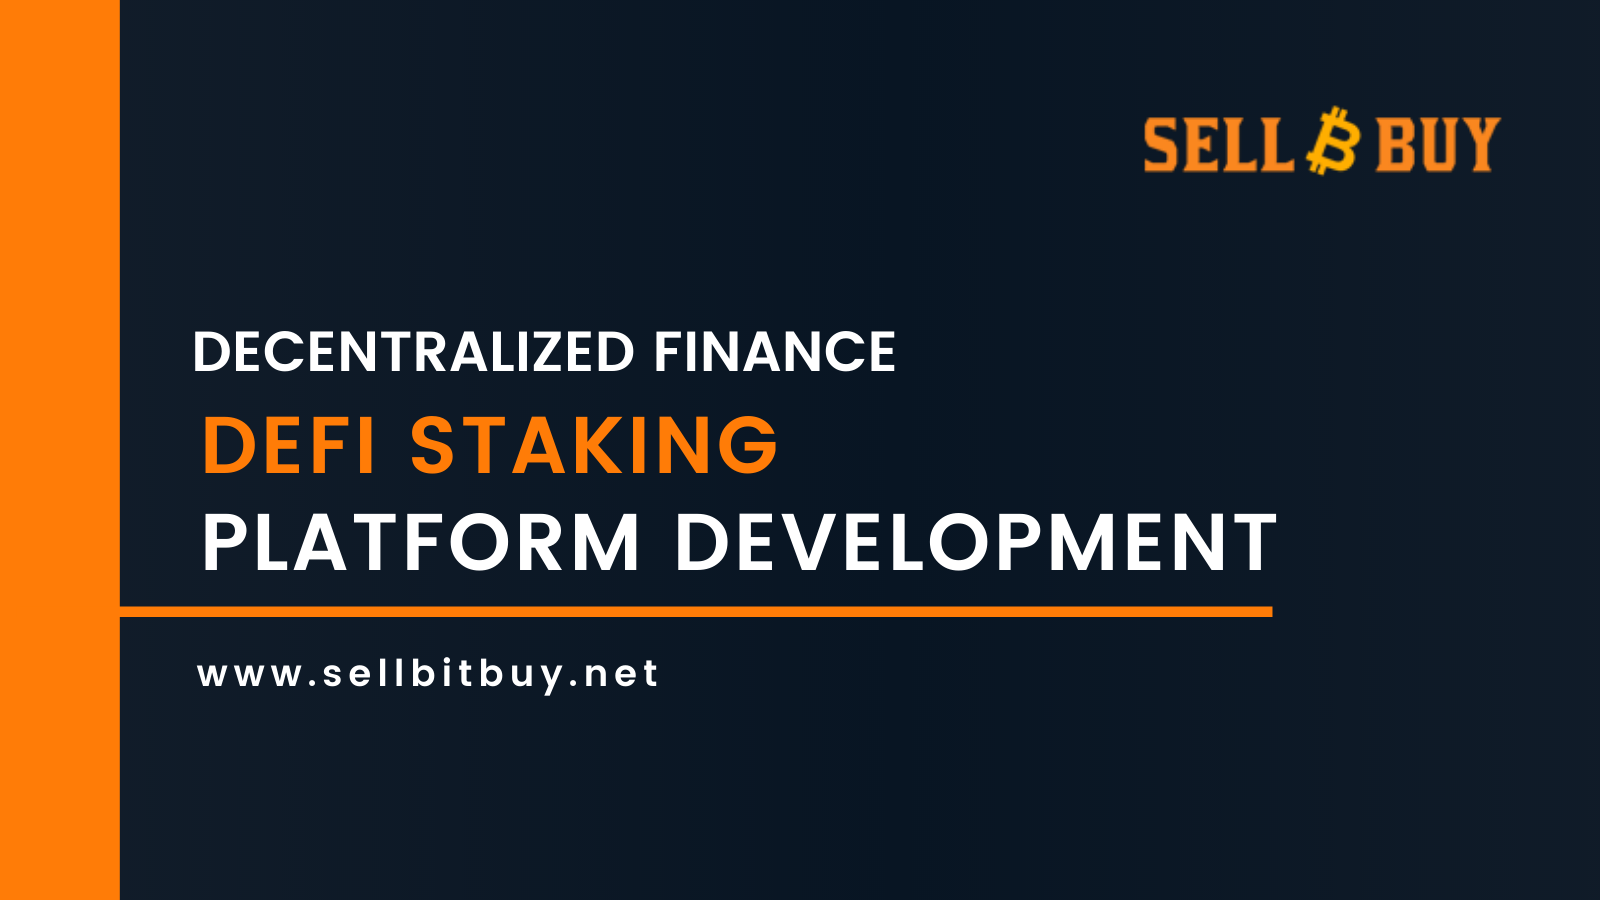 DeFi Staking Platform Development Services & Solutions Company